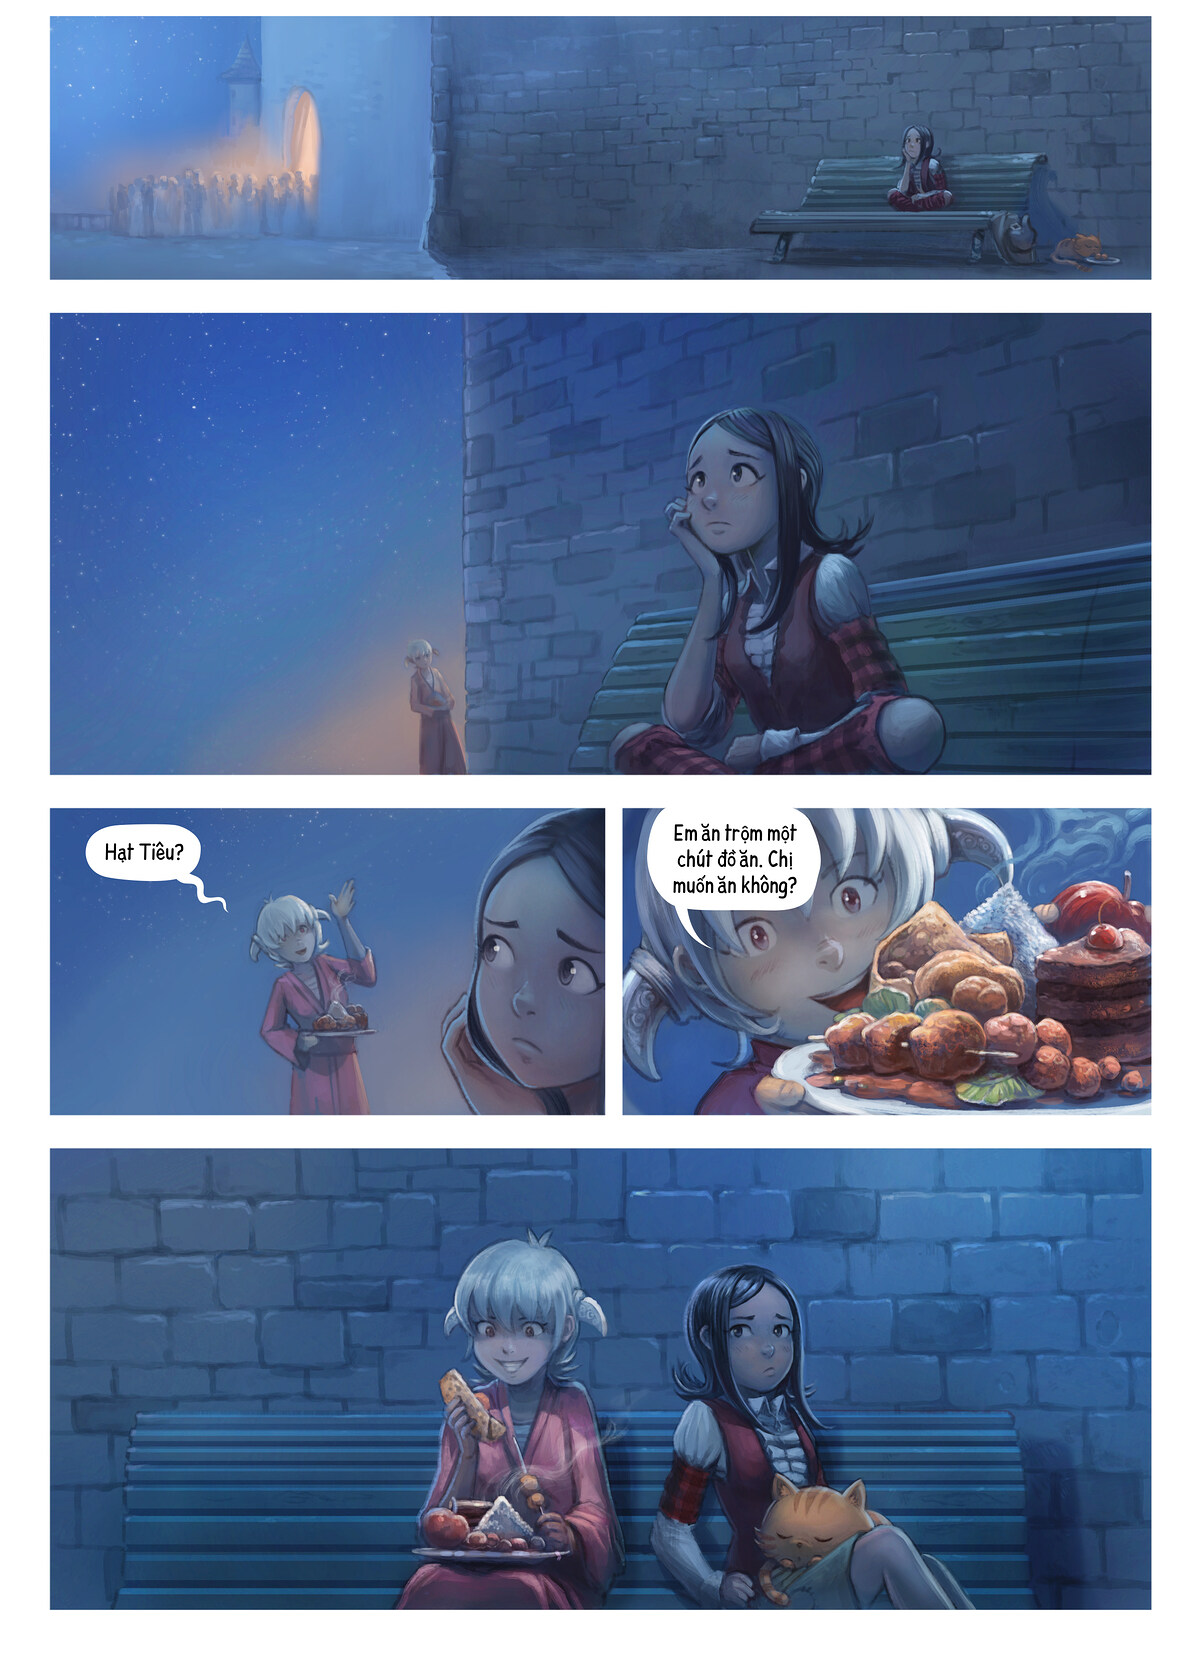 A webcomic page of Pepper&Carrot, Tập 28 [vi], trang 6